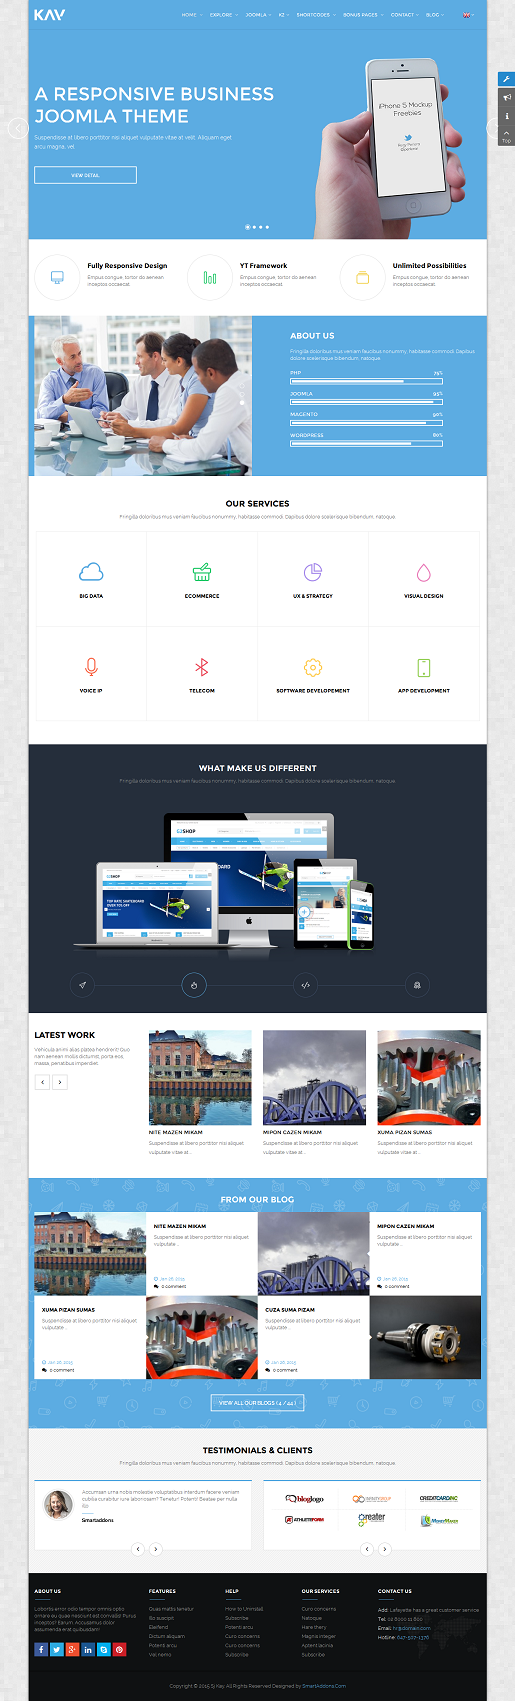 SJ Kay - Responsive Joomla Business Template - 09_boxed-layout.png